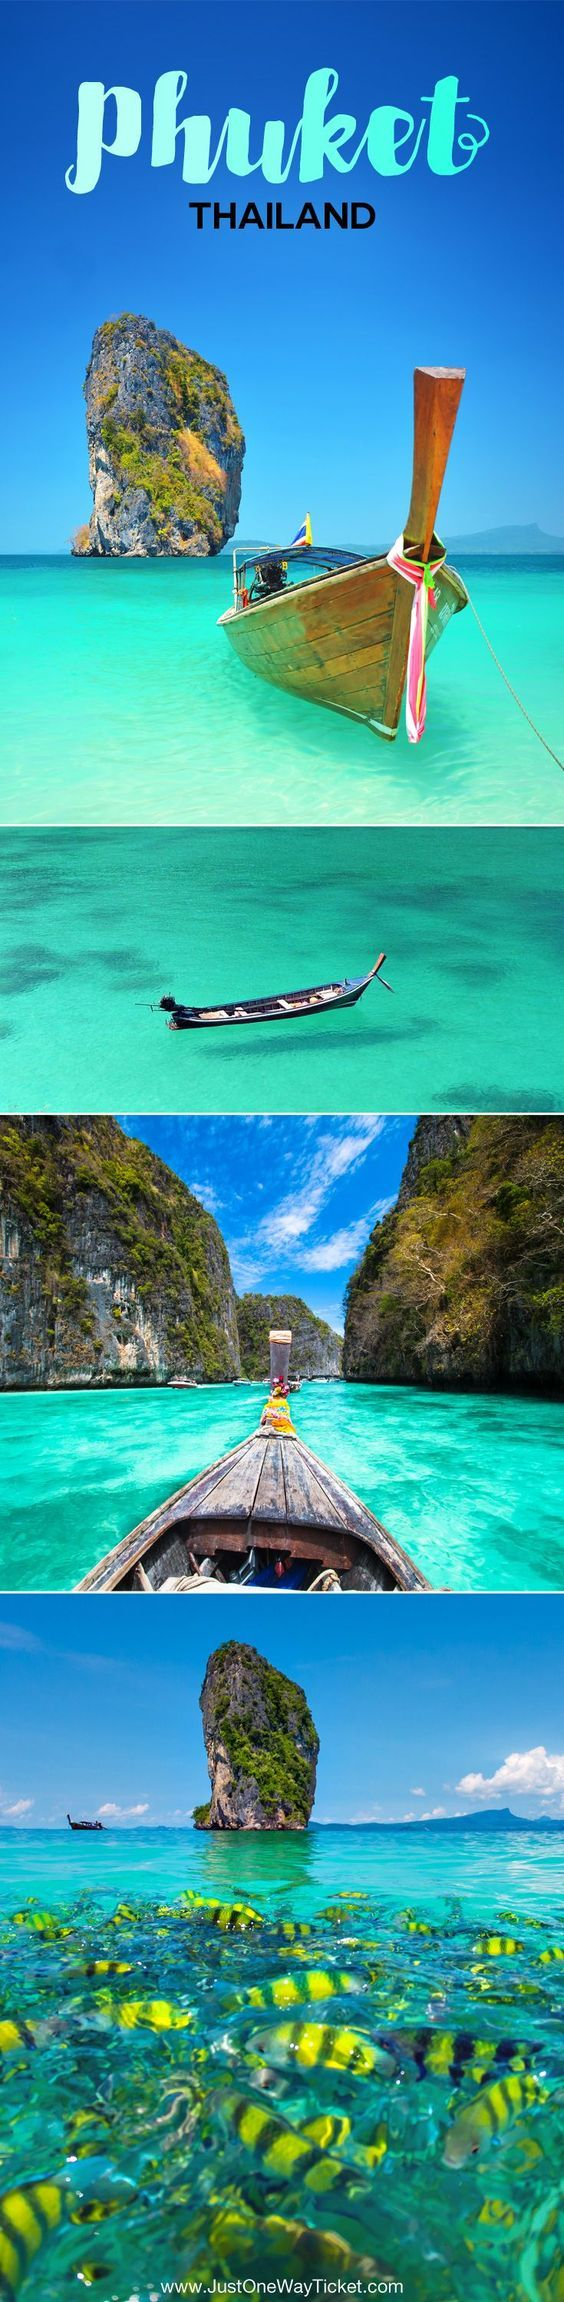 Travel Guide To Phuket: Things To Do in Phuket And Places To Stay | Phuket offers natural beauty, rich culture, white beaches, tropical islands and plenty of adventure activities | via /Just1WayTicket/ | Photo © Depositphotos